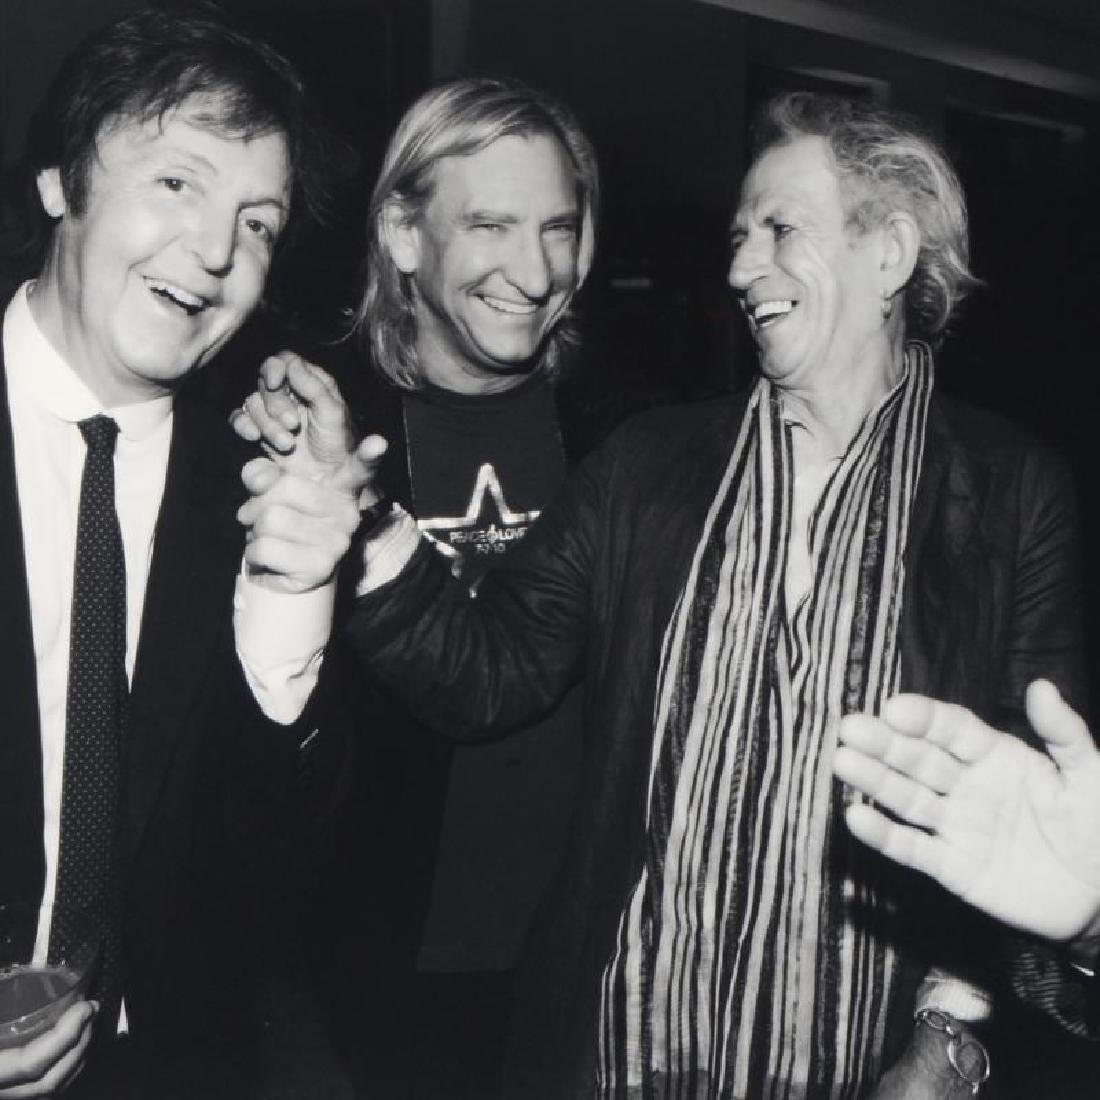 Paul McCartney, Joe Walsh, Keith Richards & Ringo Starr - 2